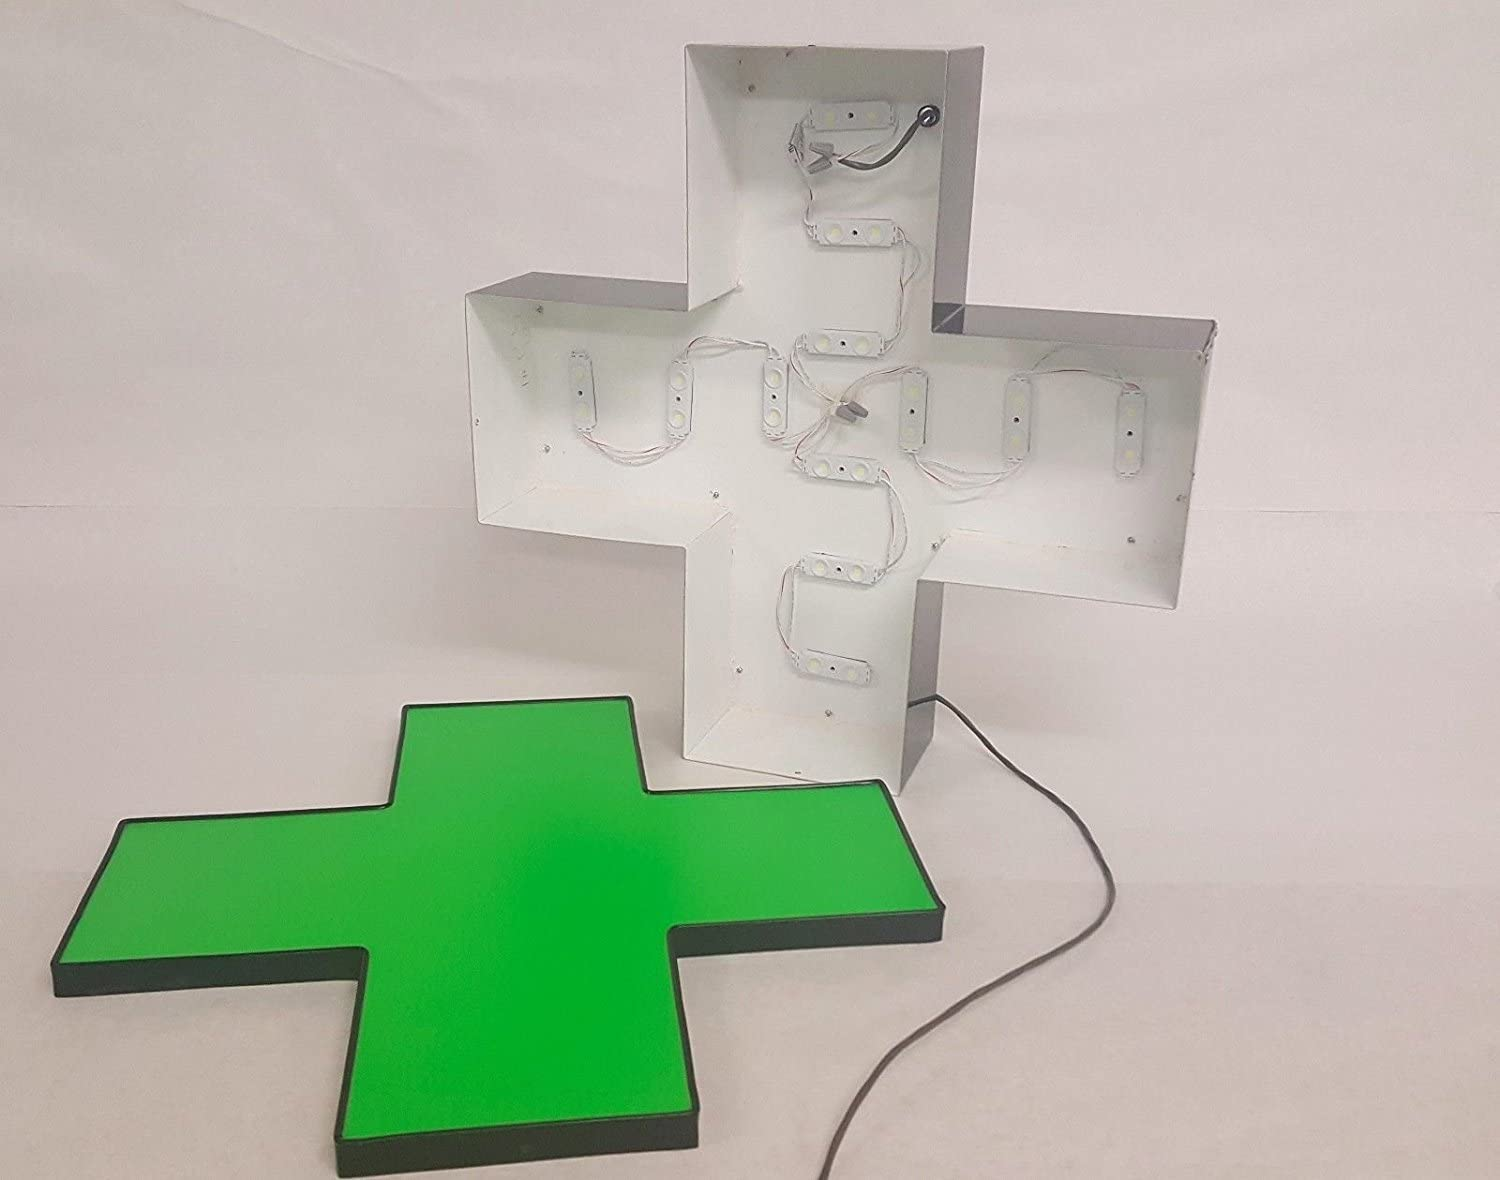 12 Inches Weather Resistant Outdoor//Indoor Standard Channel Letter LED Lit Green Medical Cross Installation Template and Power Supply Included. Storefront Sign